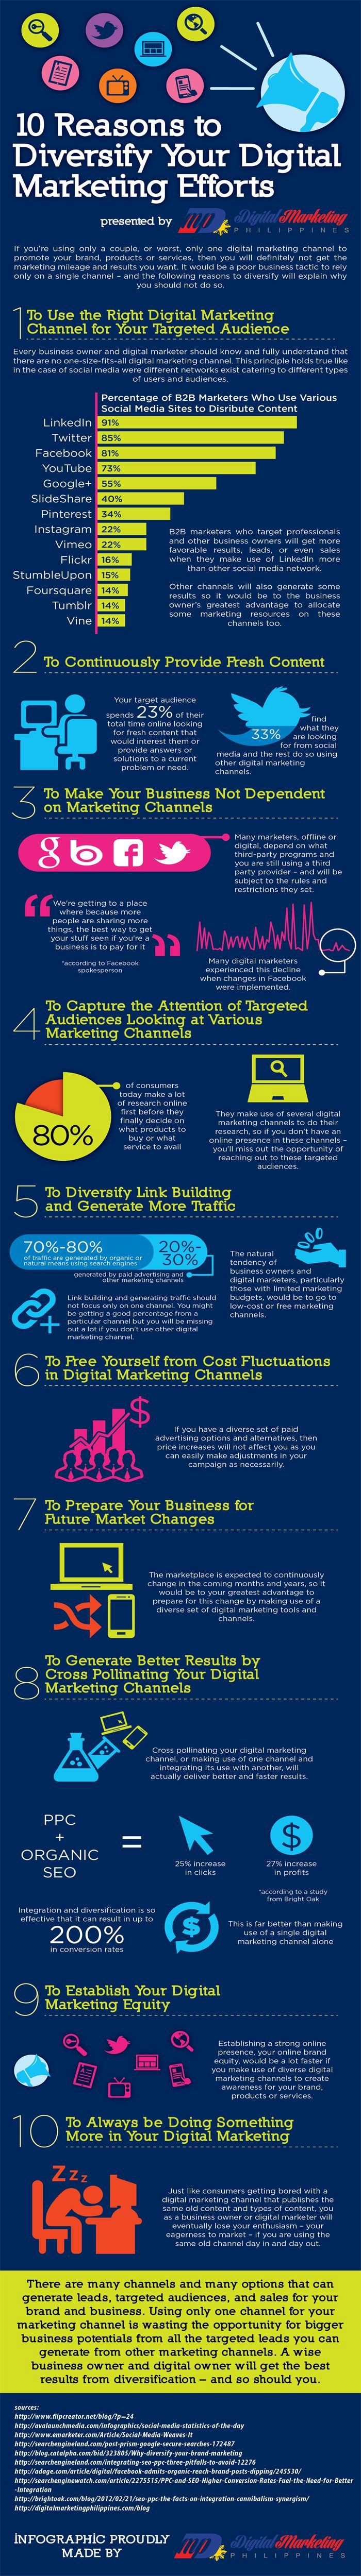 10 Reasons to Diversify Digital Marketing http://webmag.co/10-reasons-diversify-digital-marketing/ #infographic